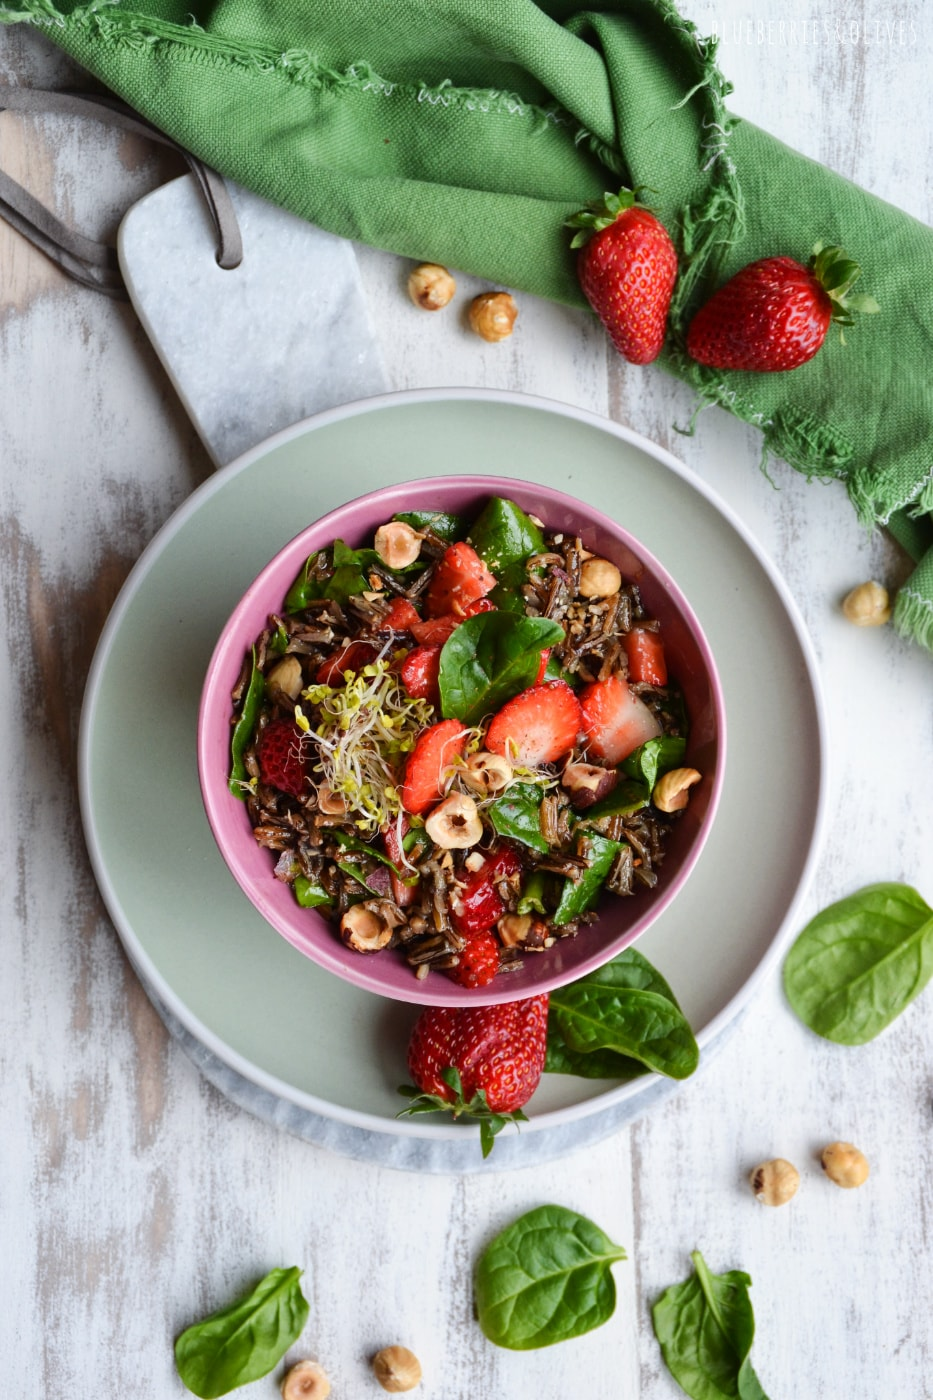 WILD RICE SALAD WITH STRAWBERRIES IN A PINK BOWL, GREEN DISH AND CLOTH, WHITE BACKGROUND